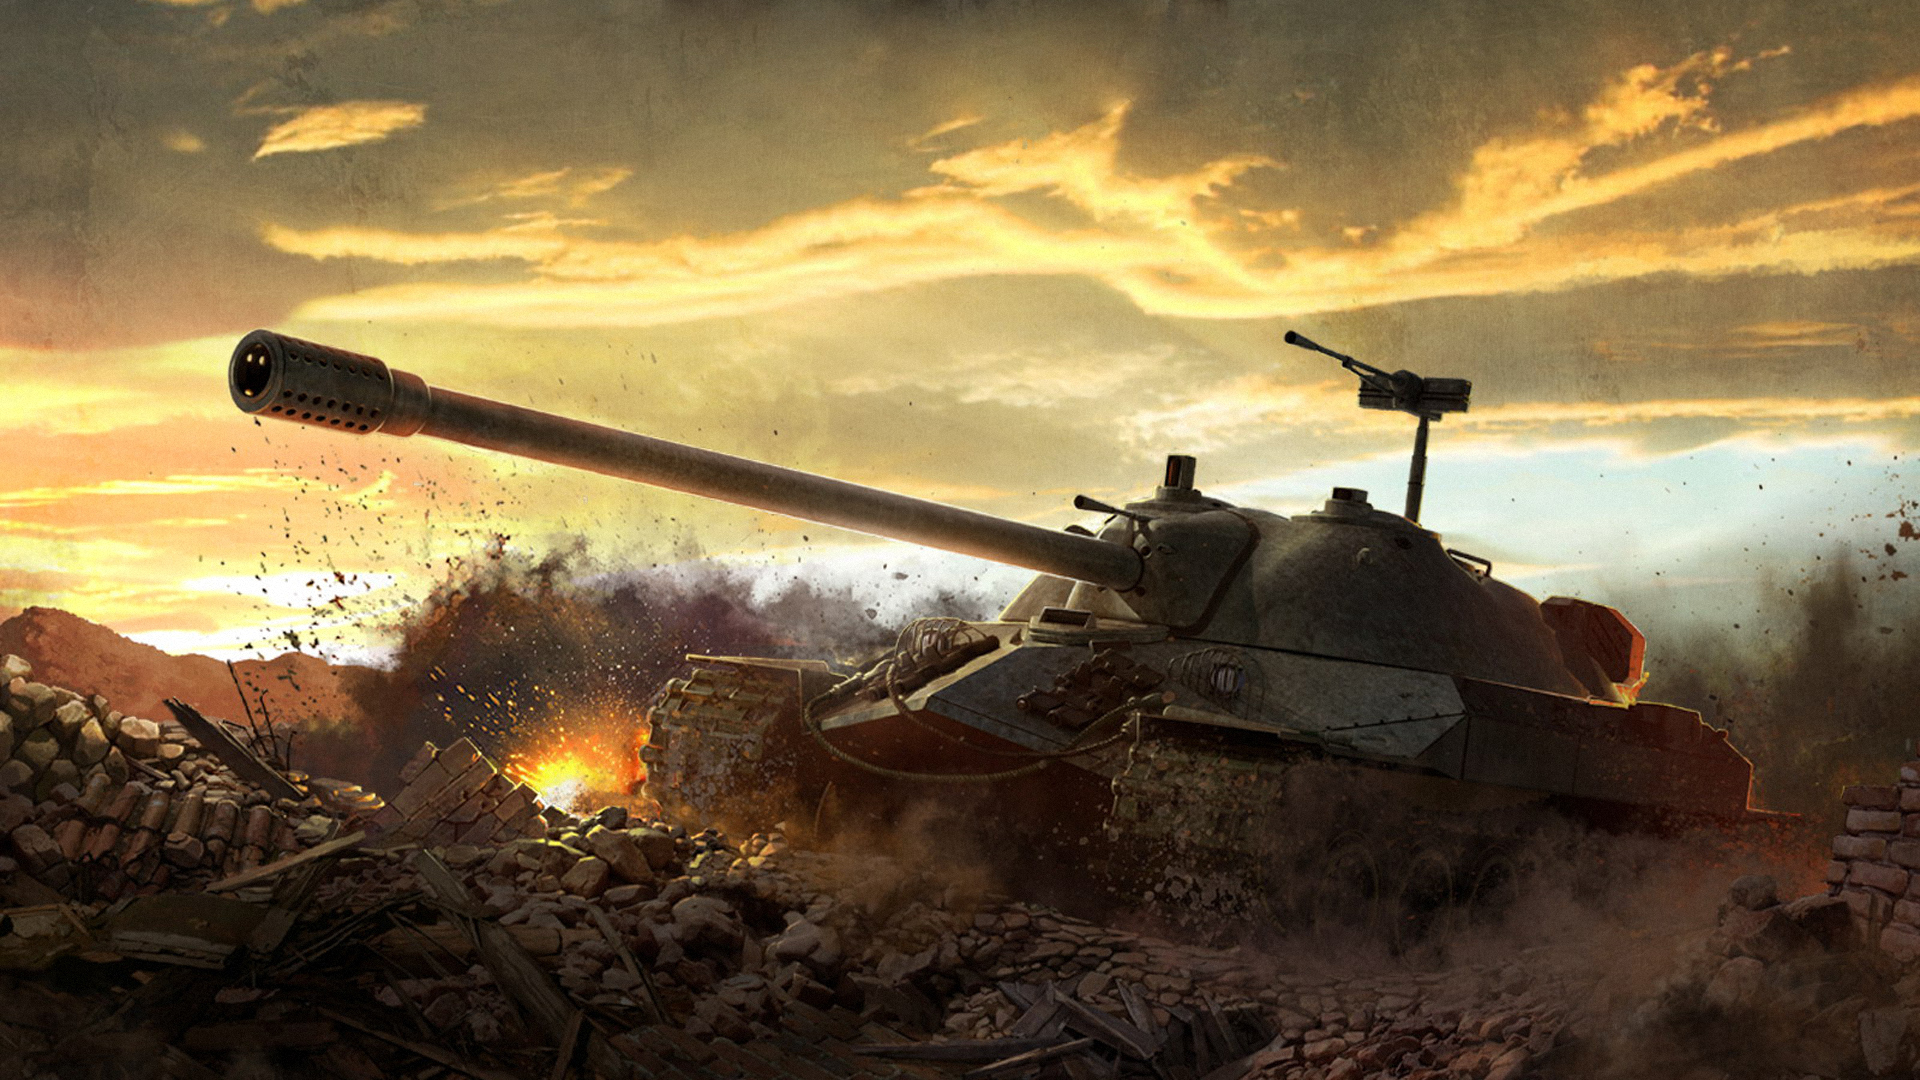 World-of-Tanks-Soviet-heavy-tank-IS-and-images-wallpaper-wp38012223